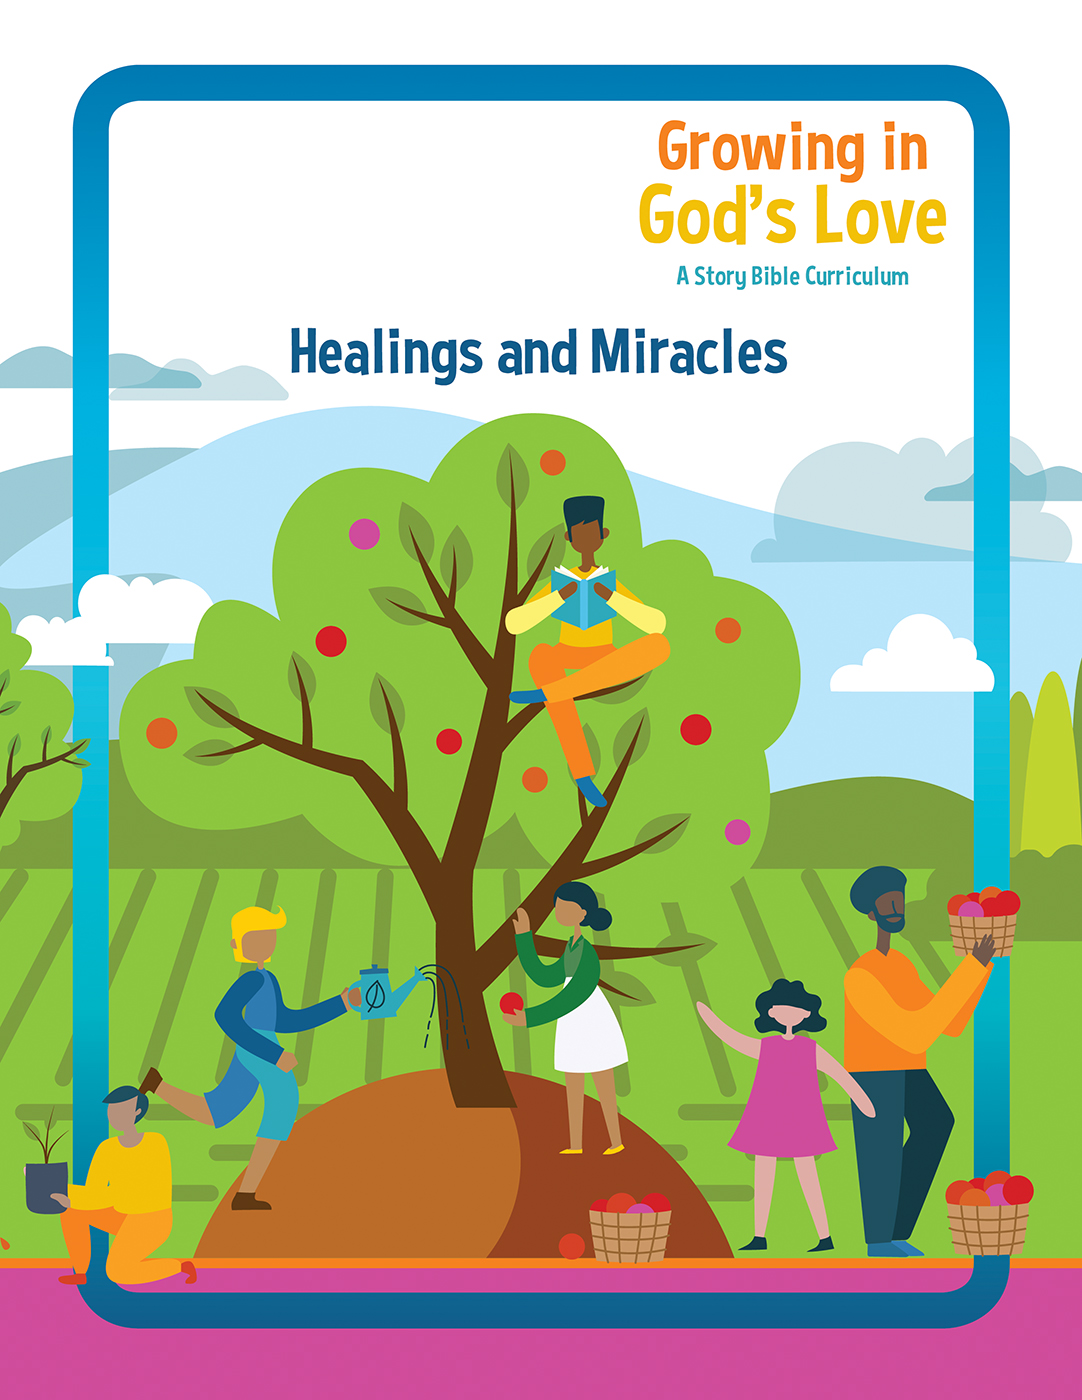 Healings and Miracles